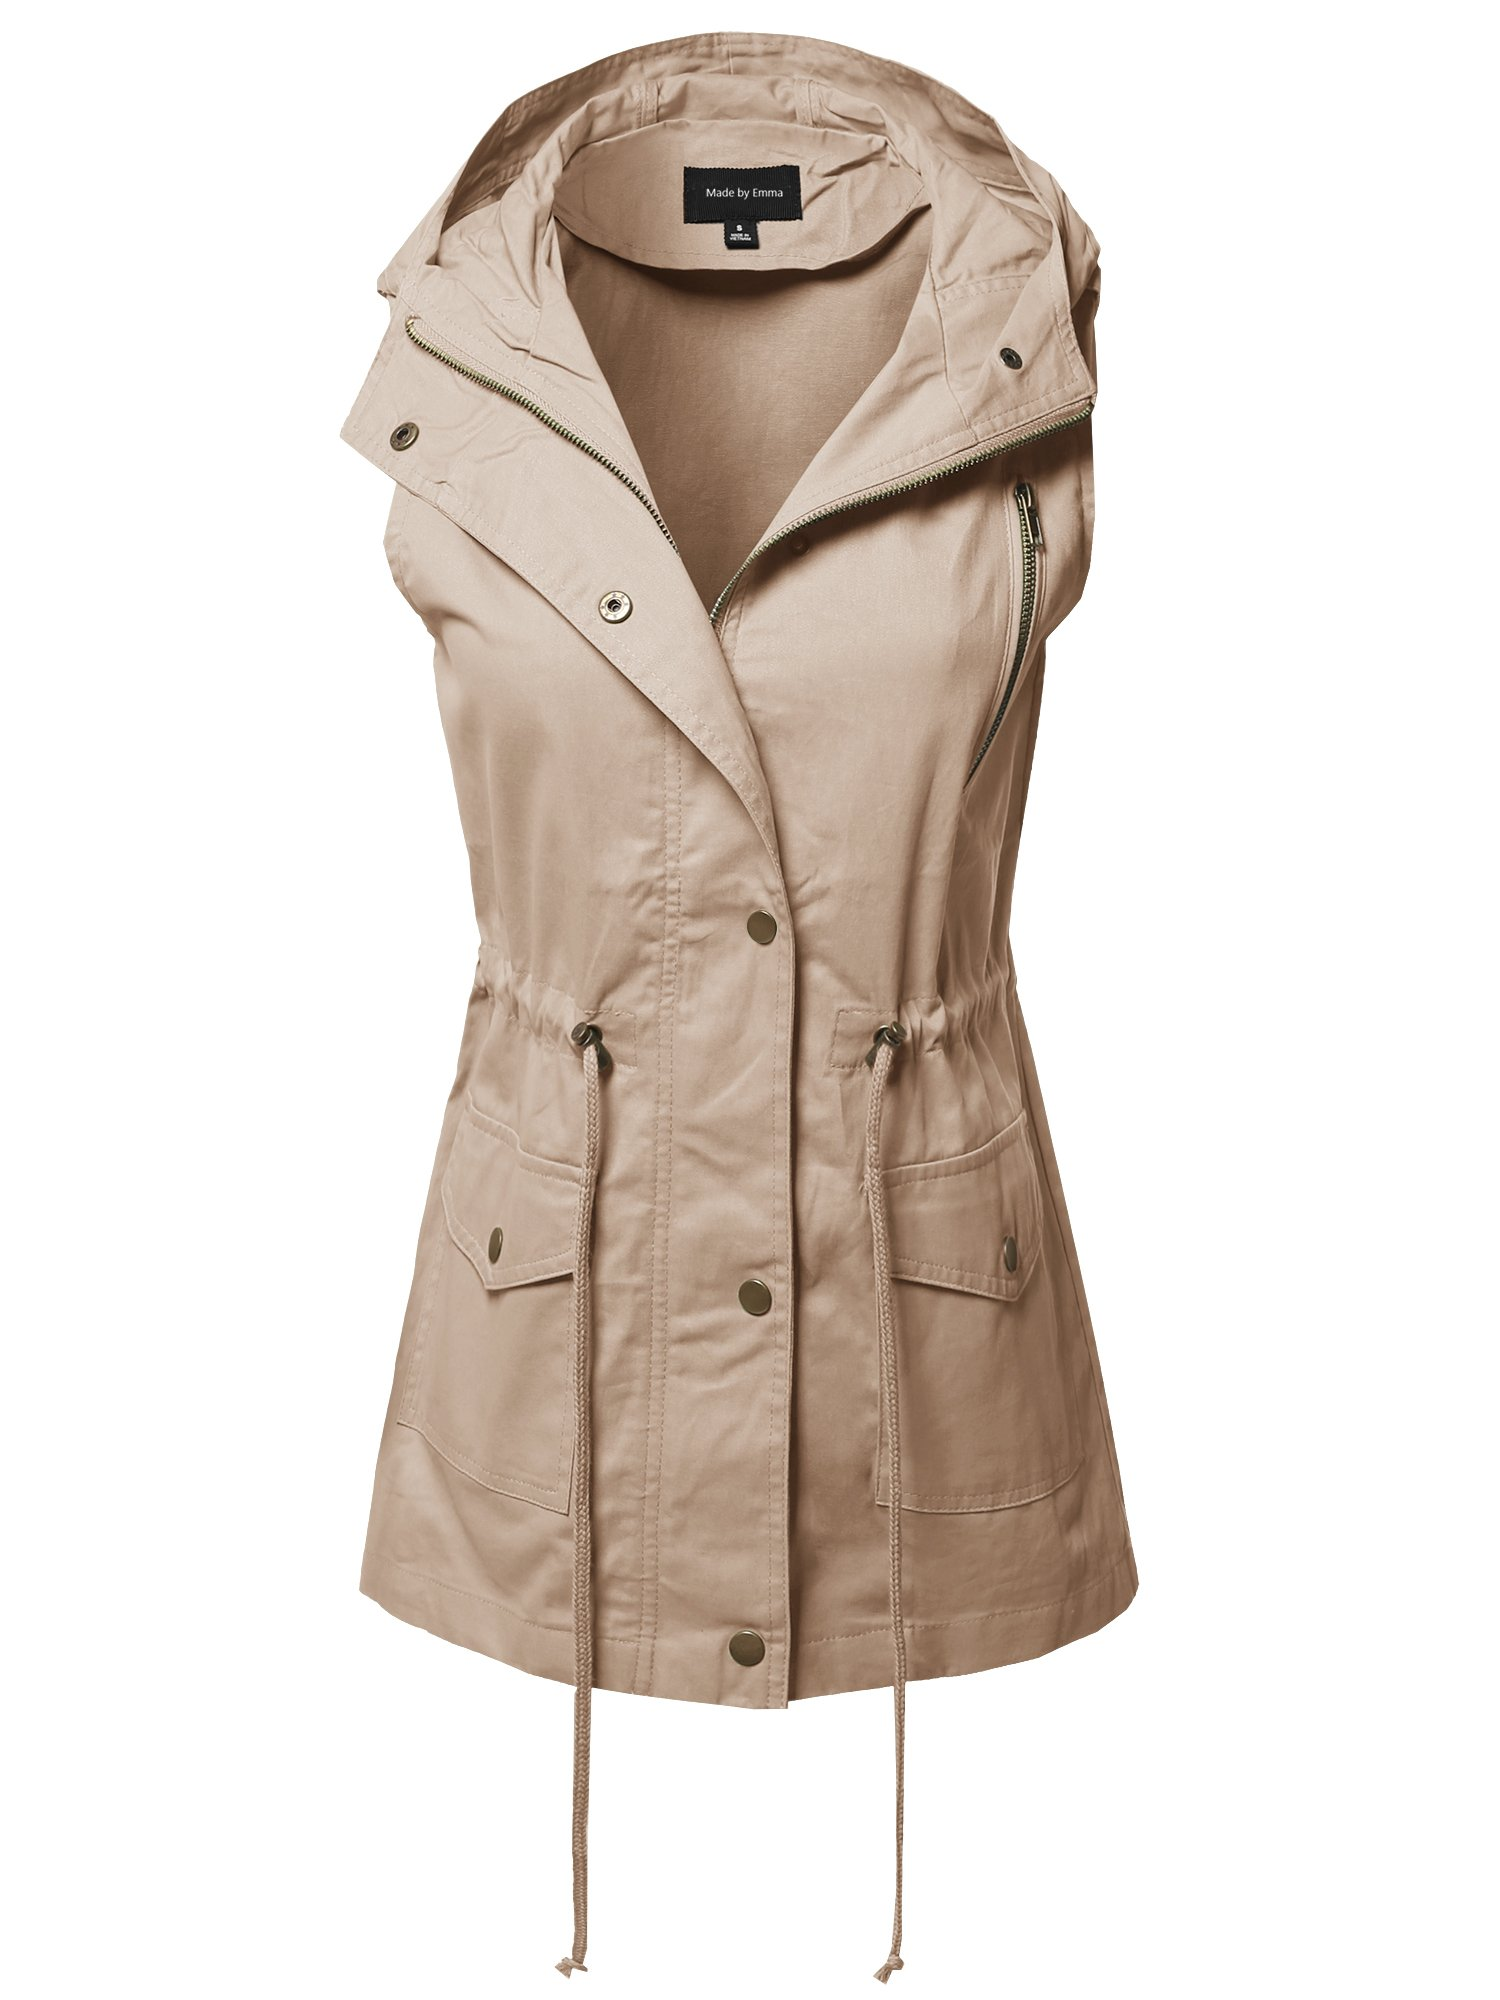 Made by Emma CasualZipper with Snap Button Closure Military Drawstring Hoodie Vest Khaki L